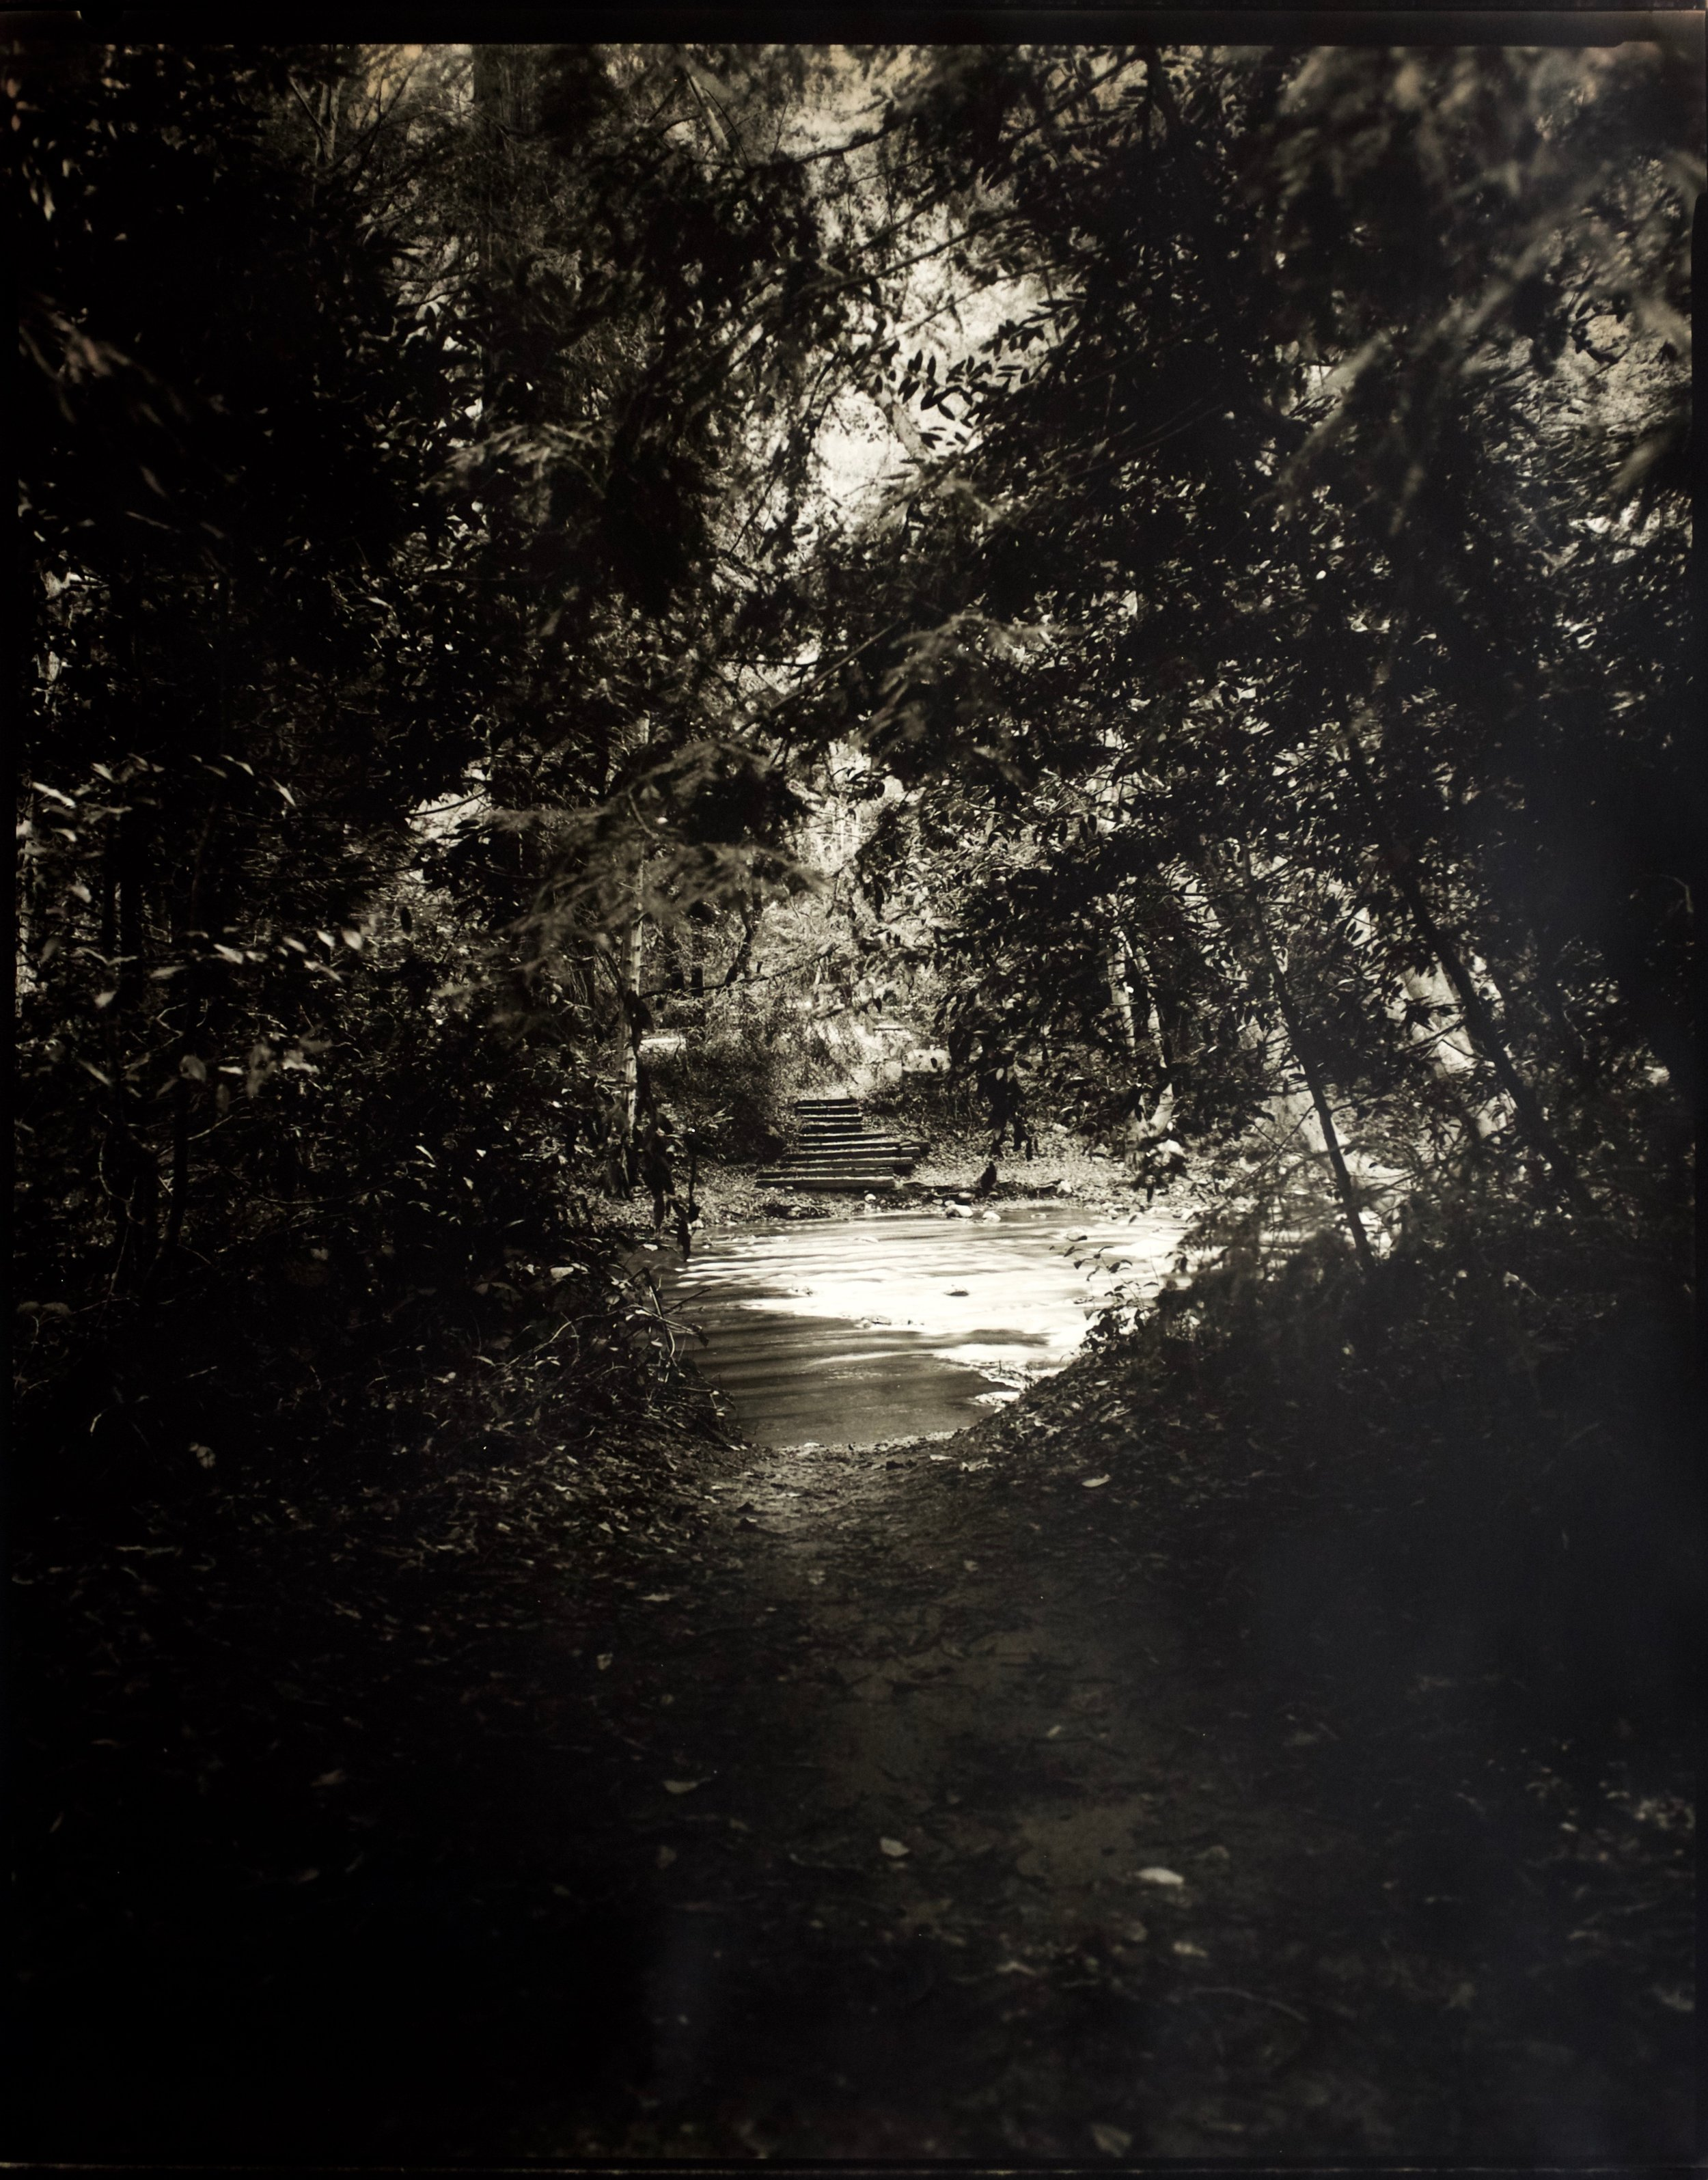 Crossing Over,  50 in. x 41 in., collodian negative hand printed on Ilford paper, 2018. #2018-2.jpg